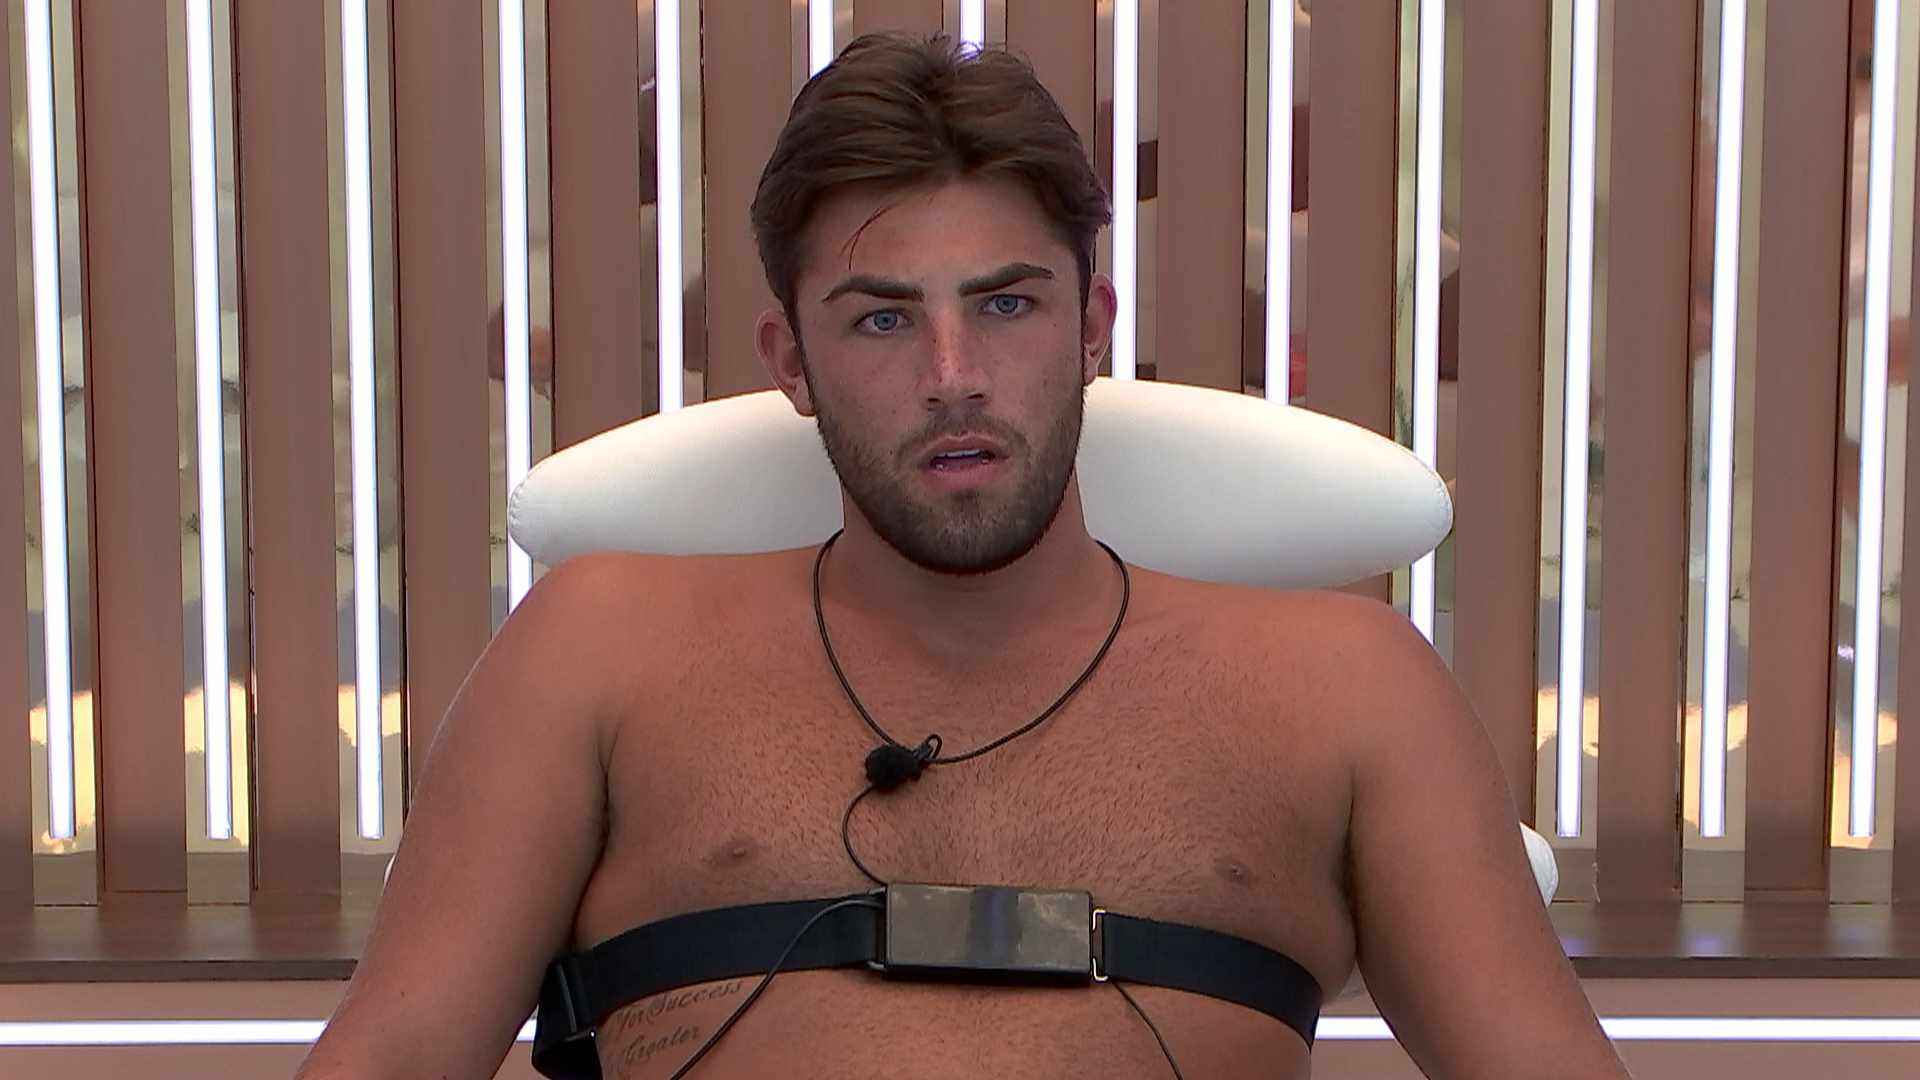 Jack taking the Love Island lie detector test